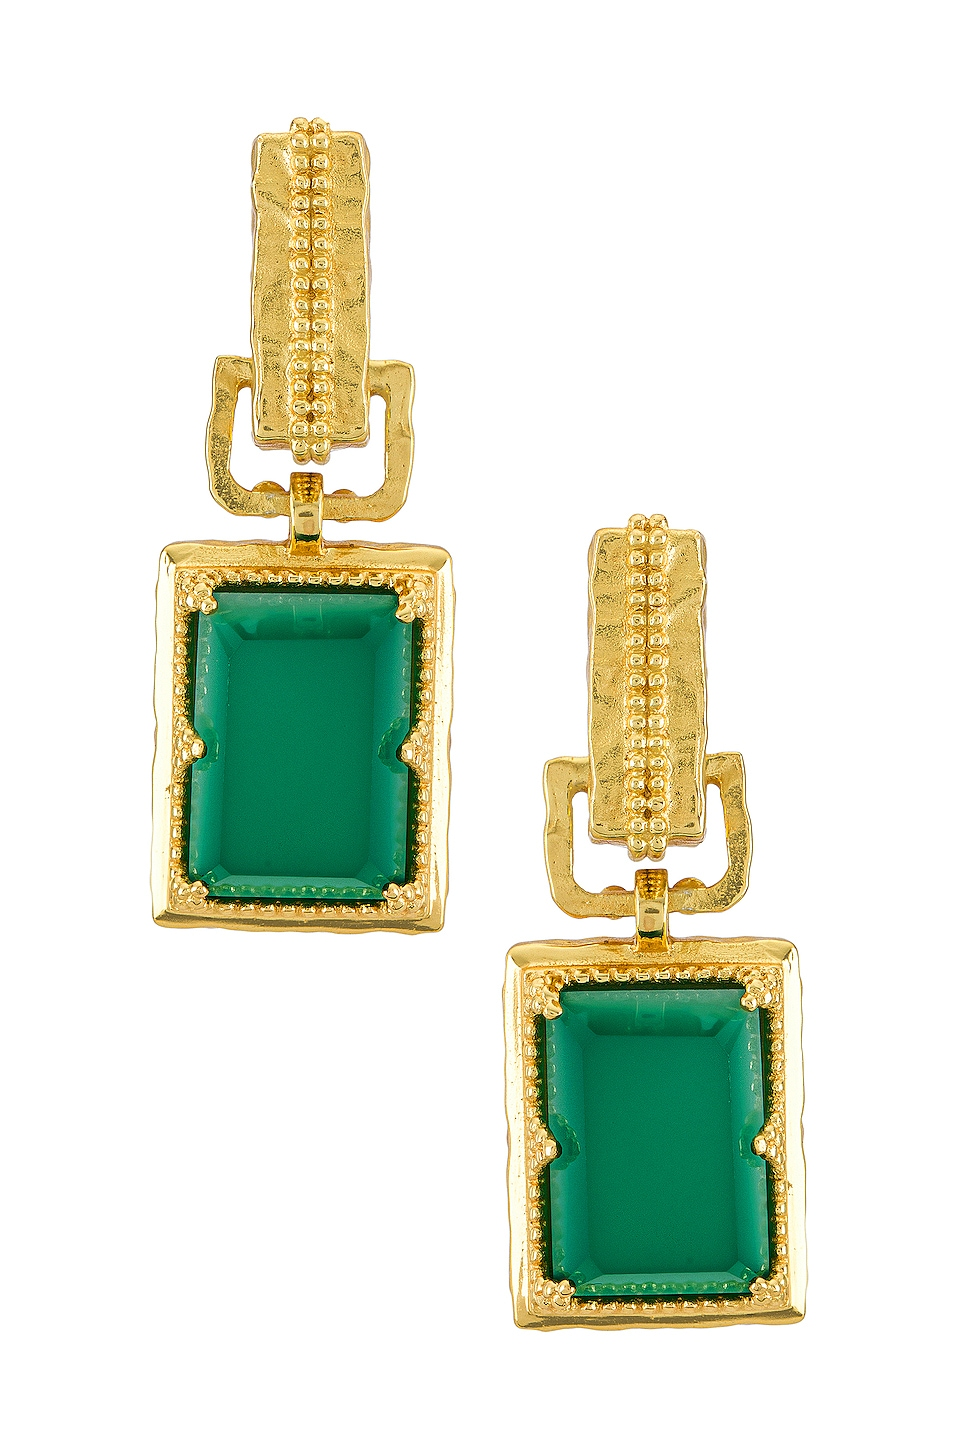 A sophisticated gold plated earrings.